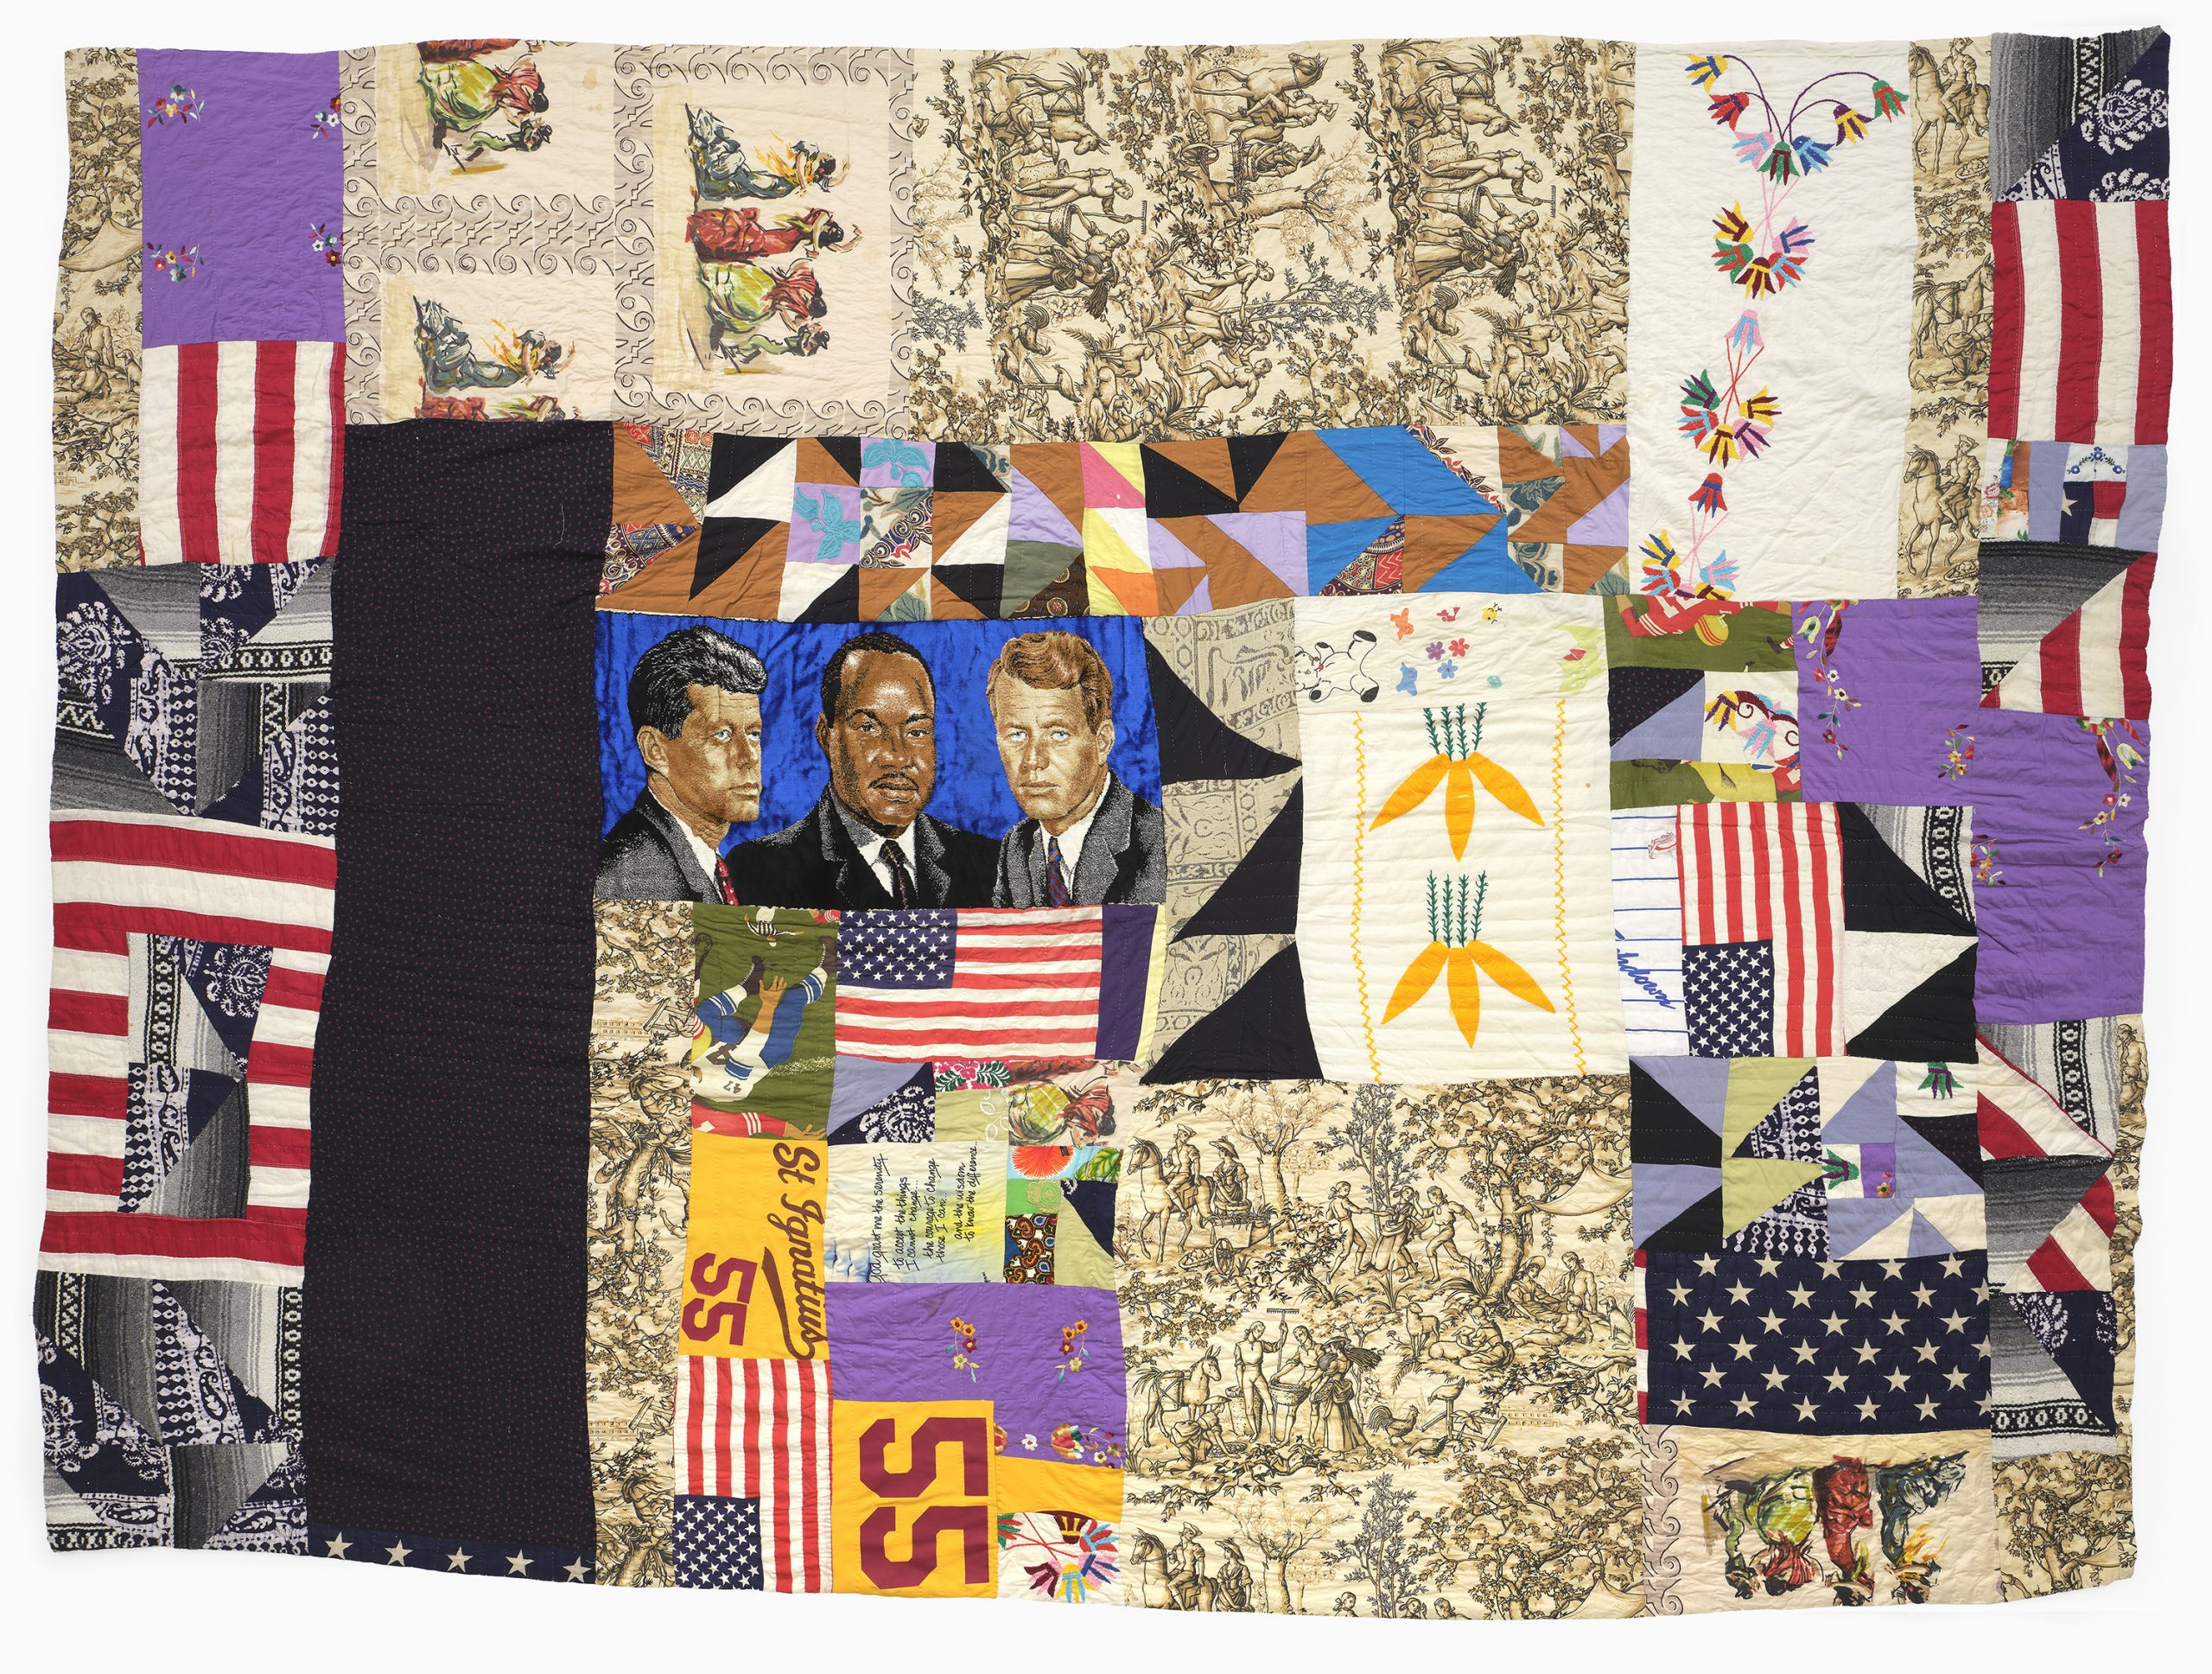 Rosie Lee Tompkins show at BAMPFA lets the brilliance of her African American improvisational quilts shine